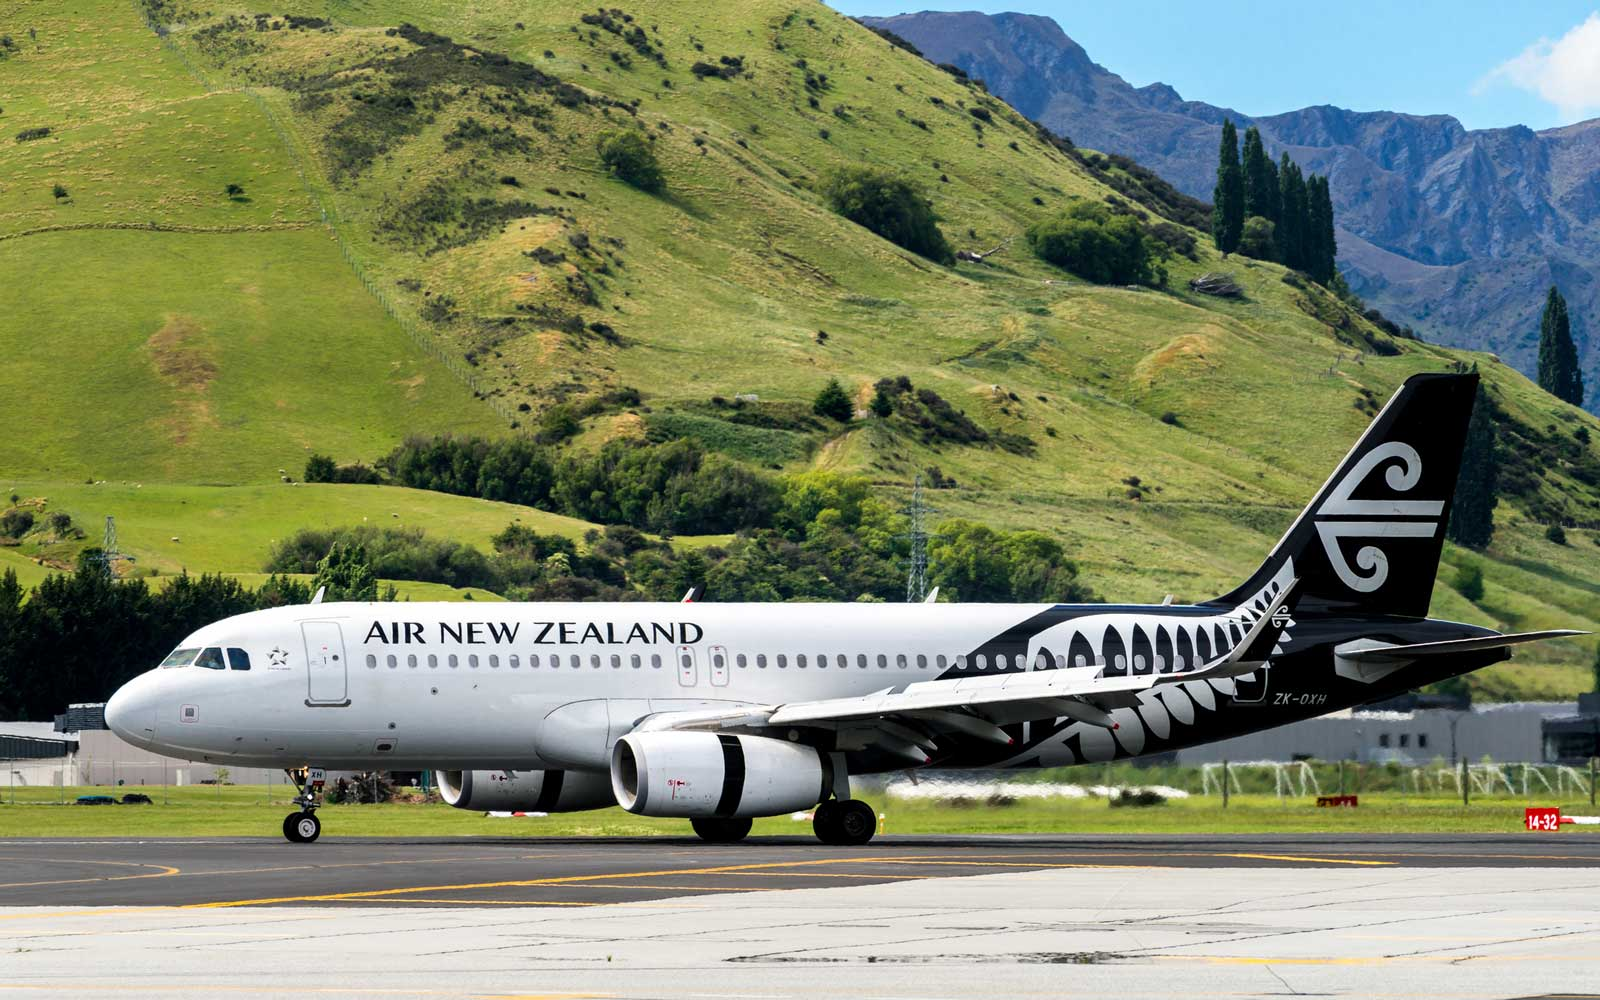 Couple Removed From Air New Zealand Flight for Refusing to Pay Attention to Safety Information